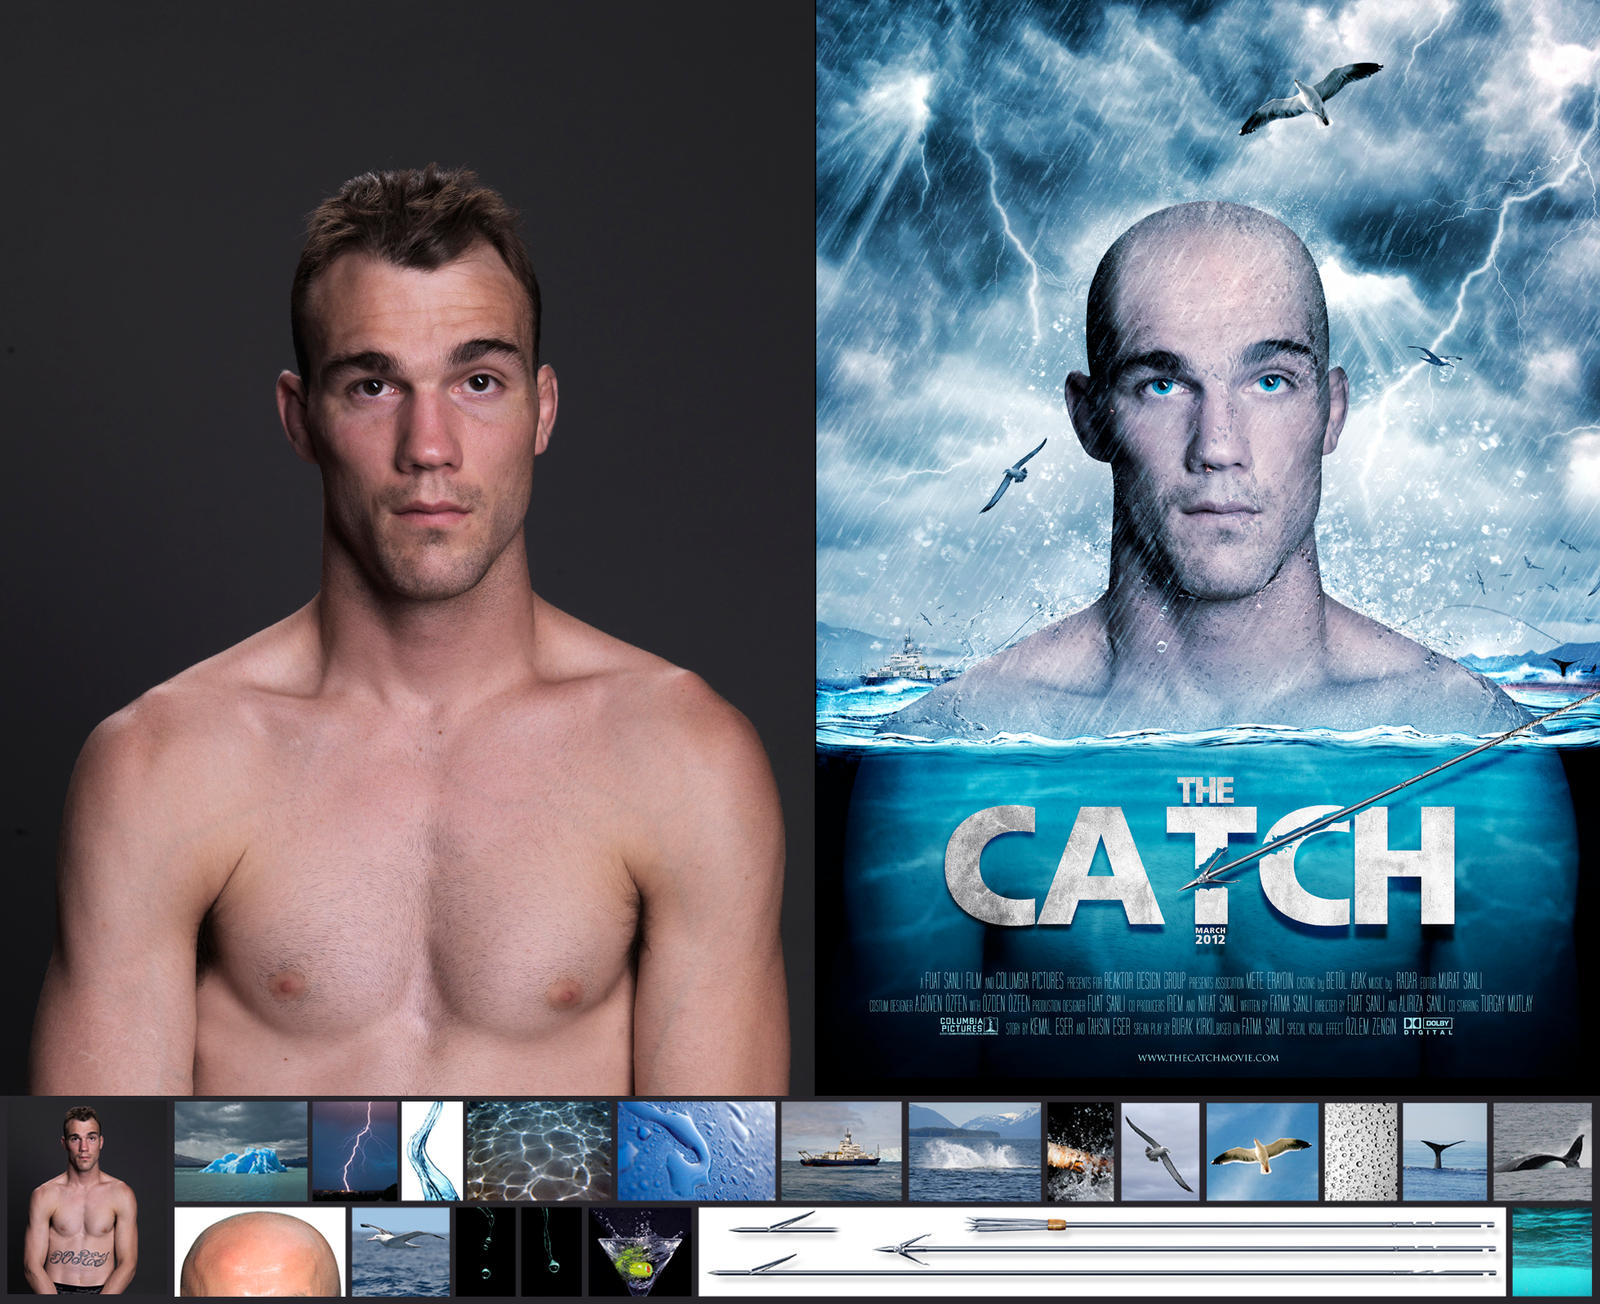 THE CATCH MOVIE POSTER